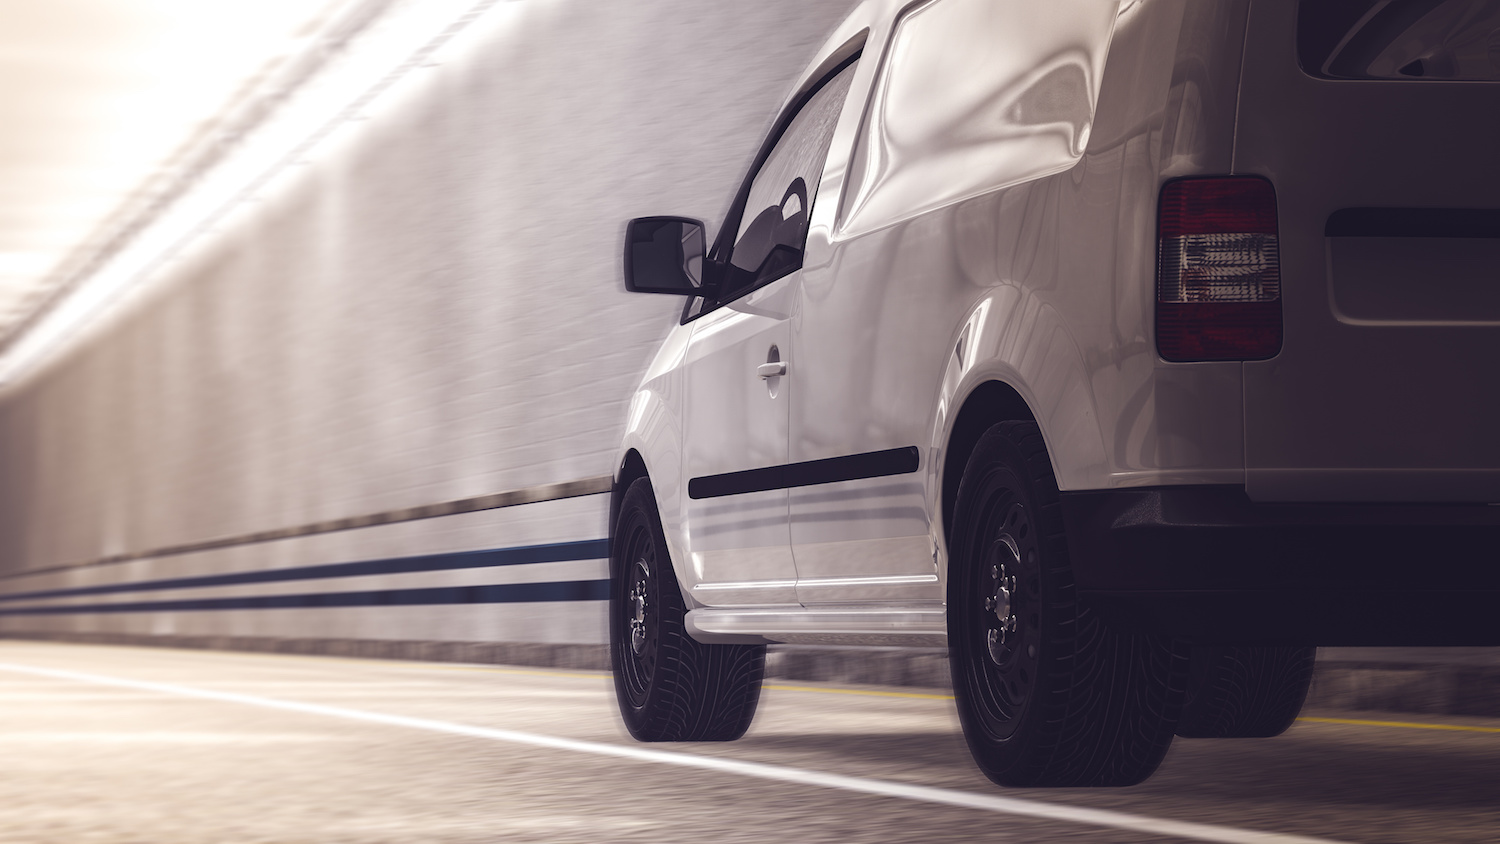 Van transportation fleet